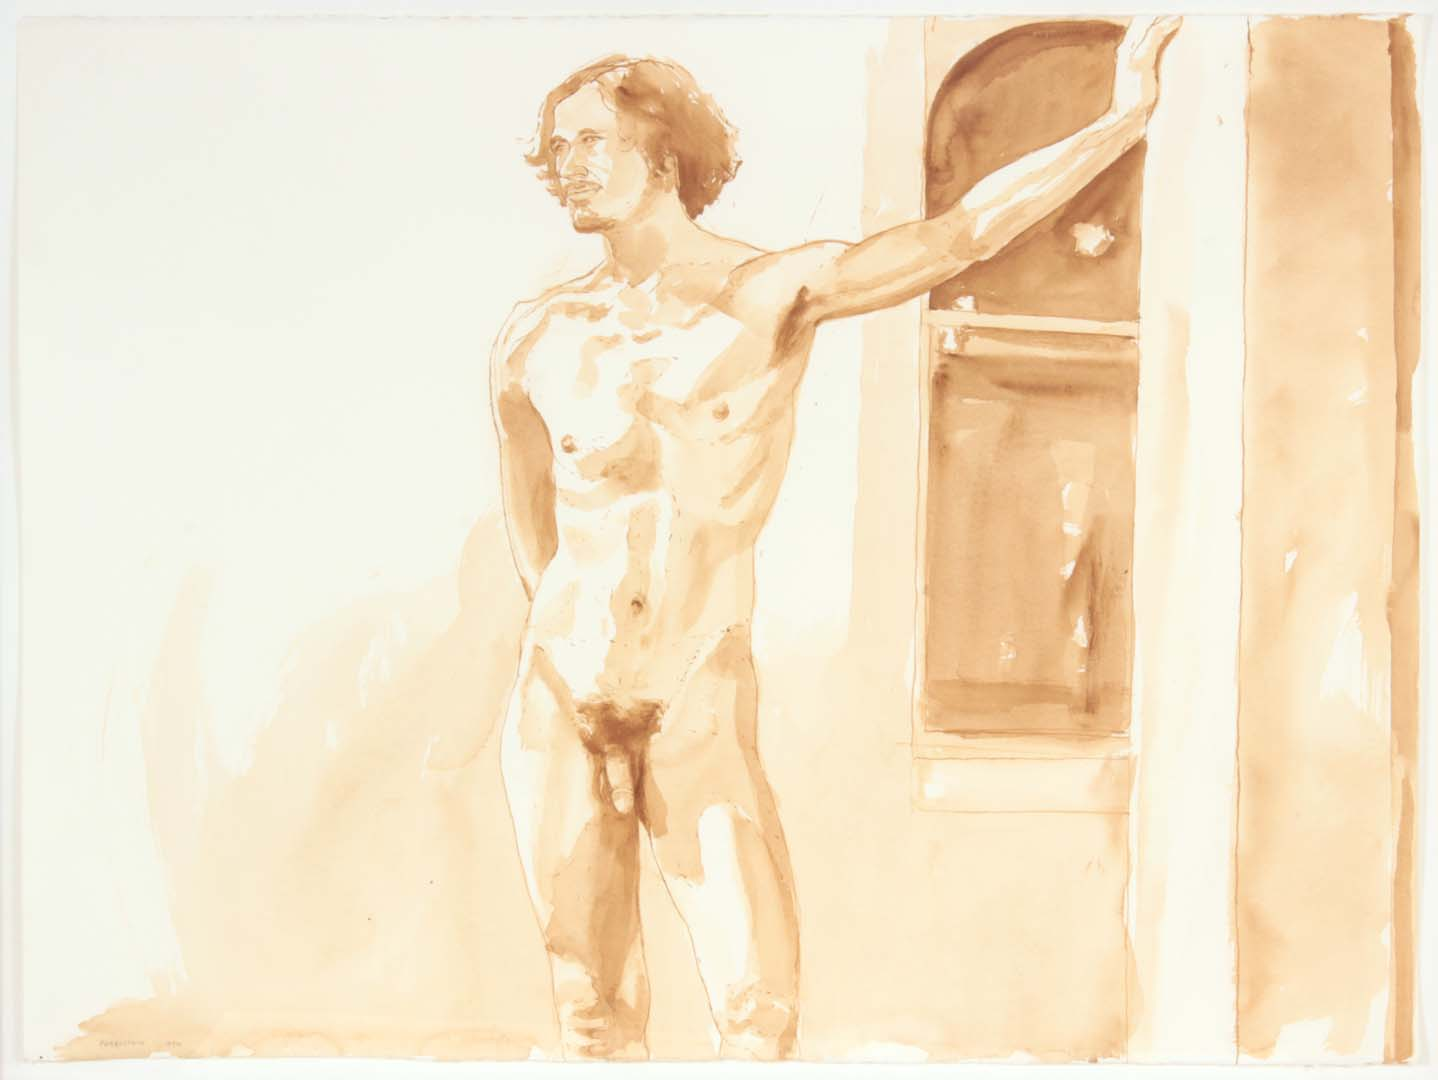 1972 Standing Male Sepia on Watercolor Paper 22 x 30